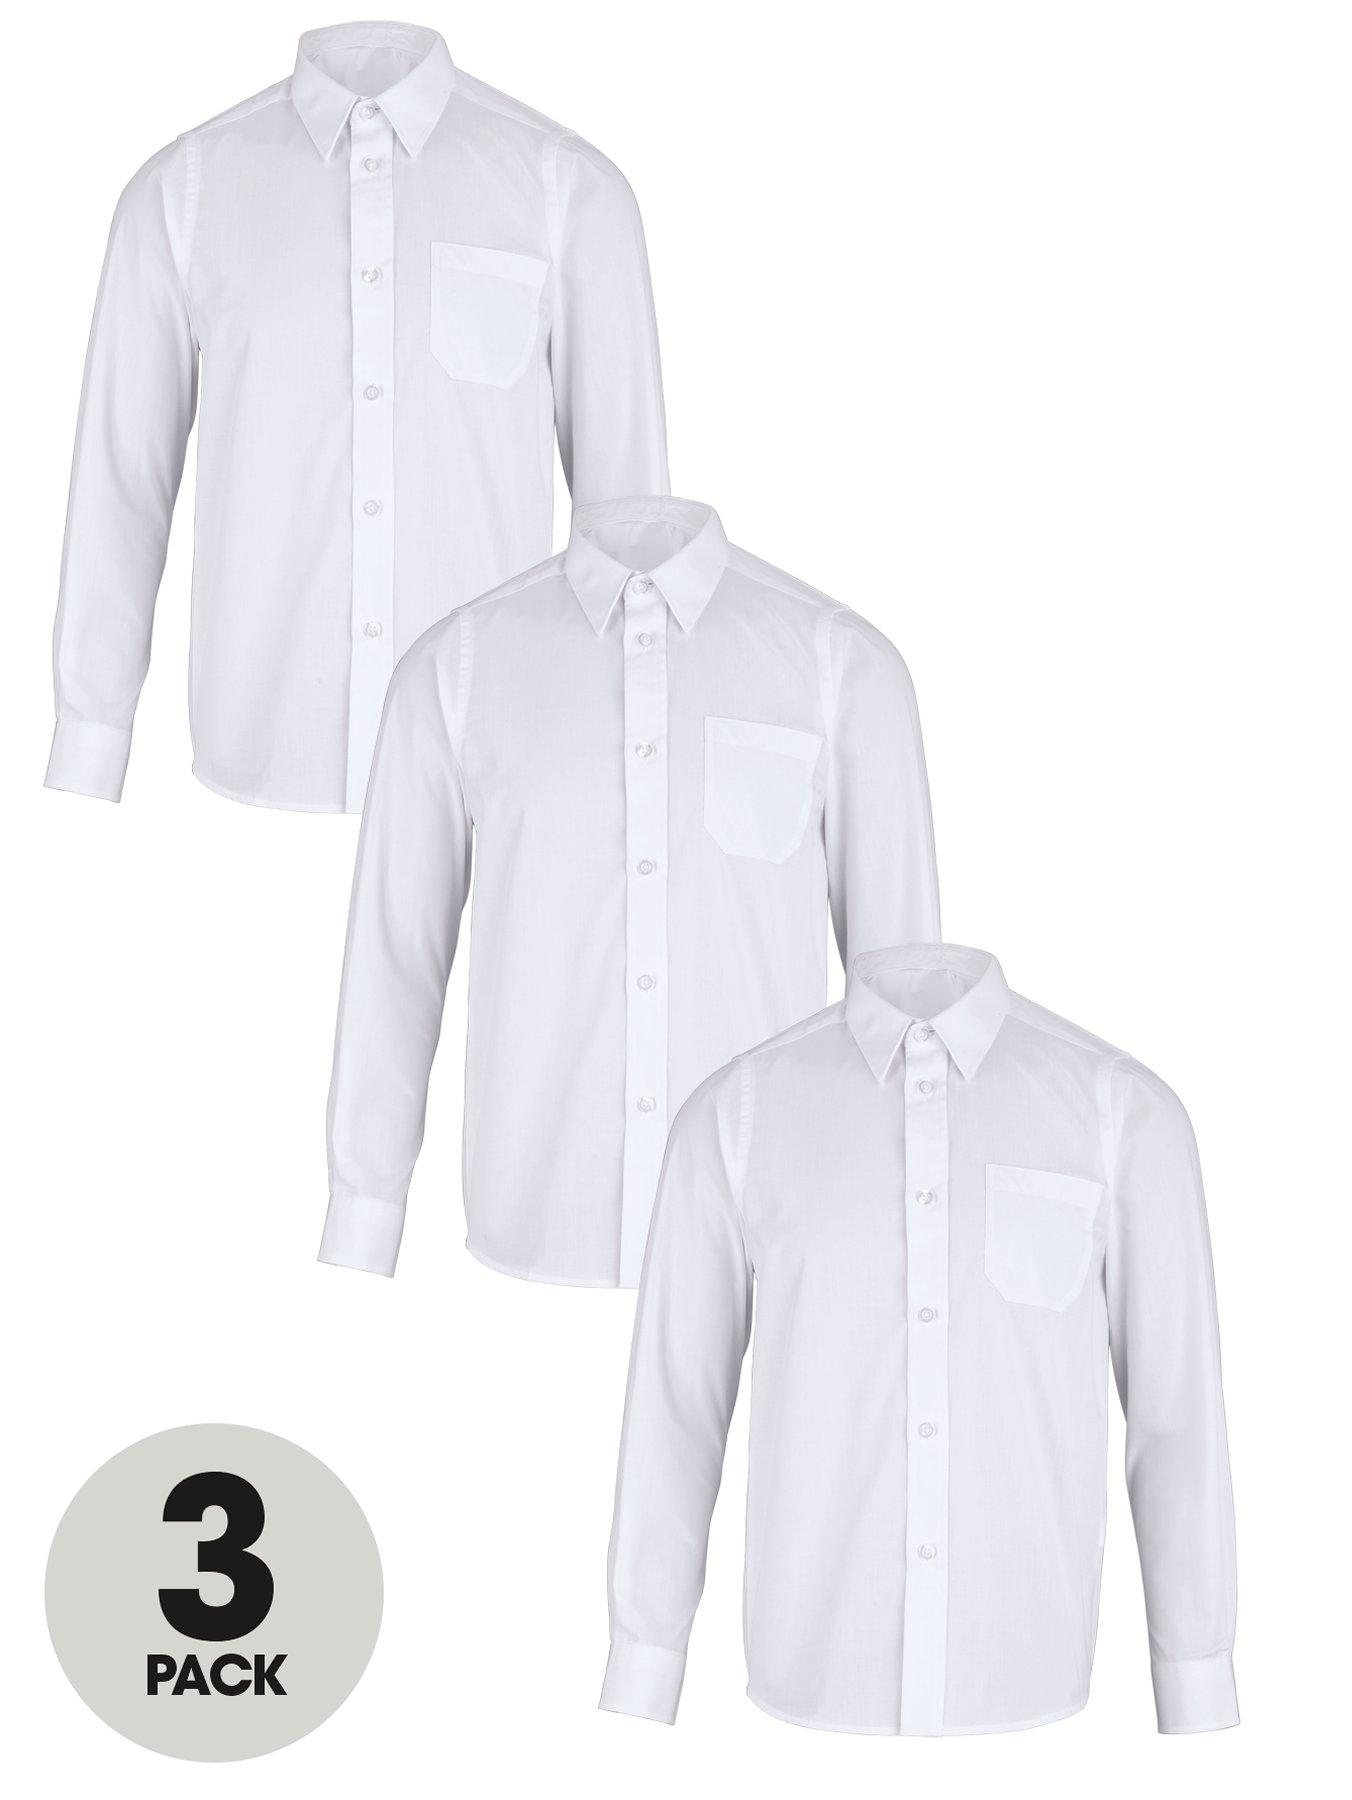 Boys Long Sleeve School Shirts (3 Pack), White,Blue